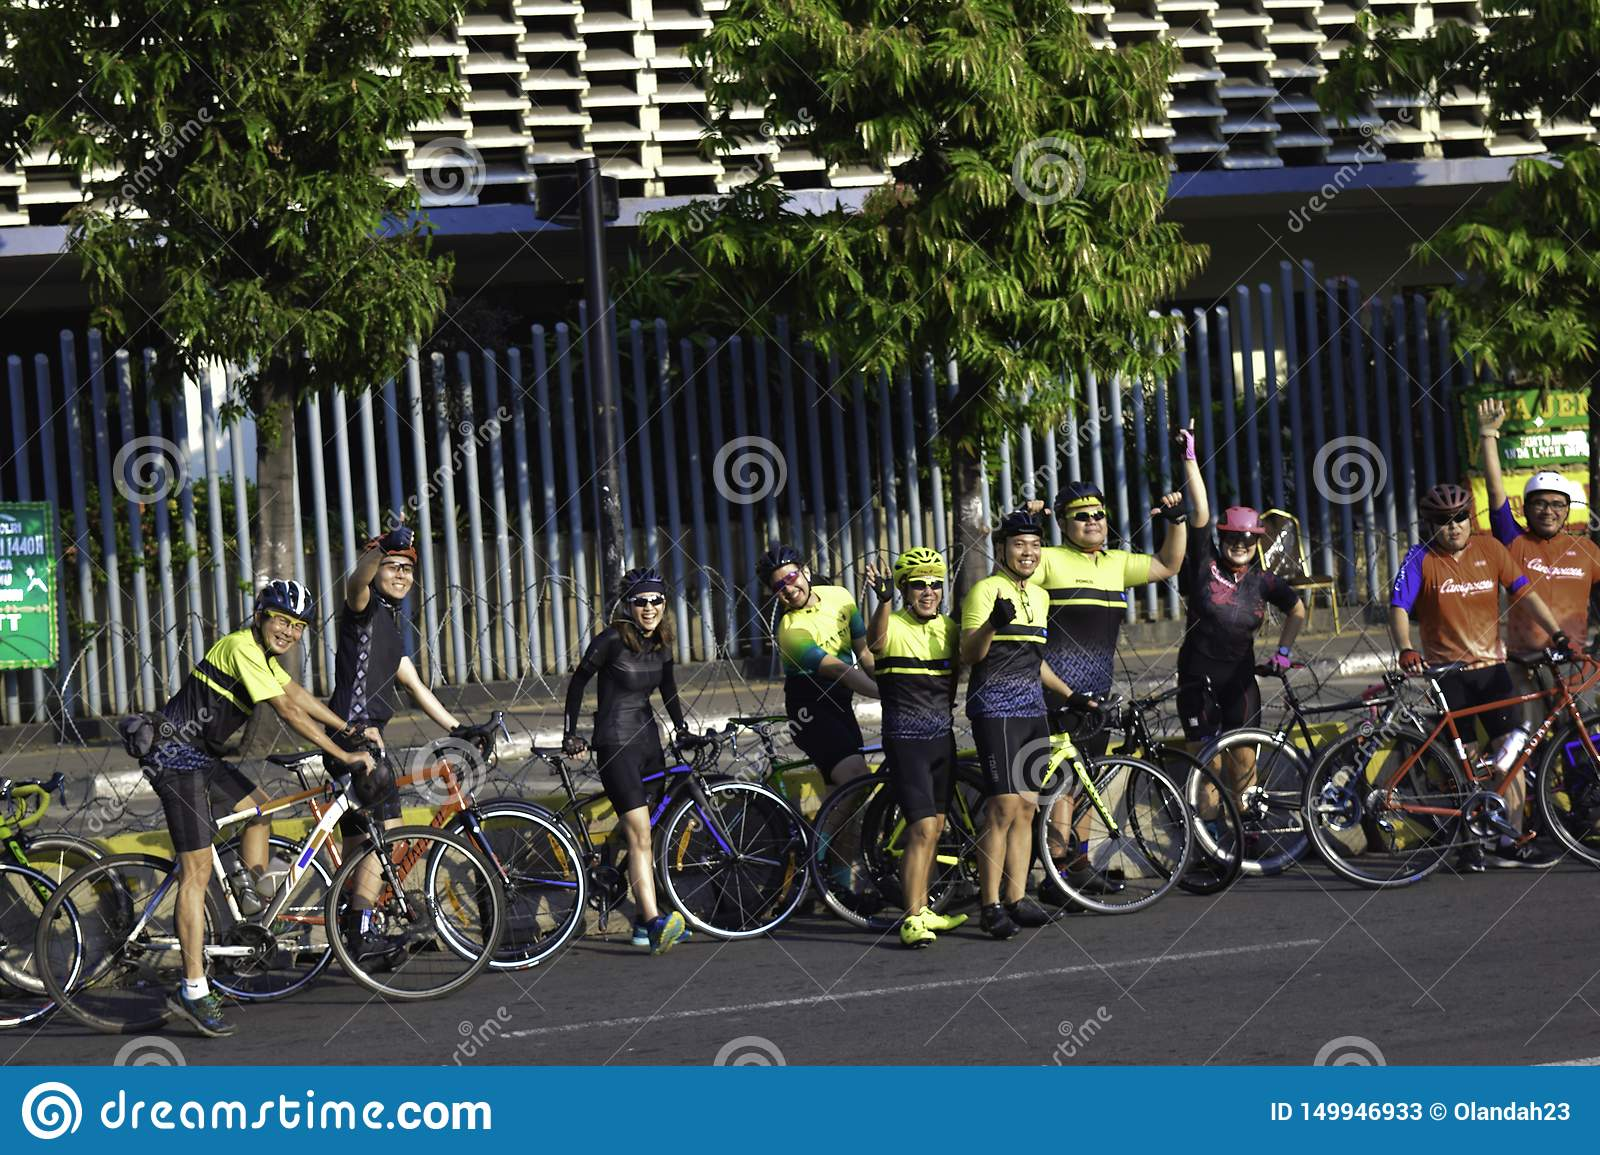 Healthy lifestyle - group people riding bicycles in city at the weekend